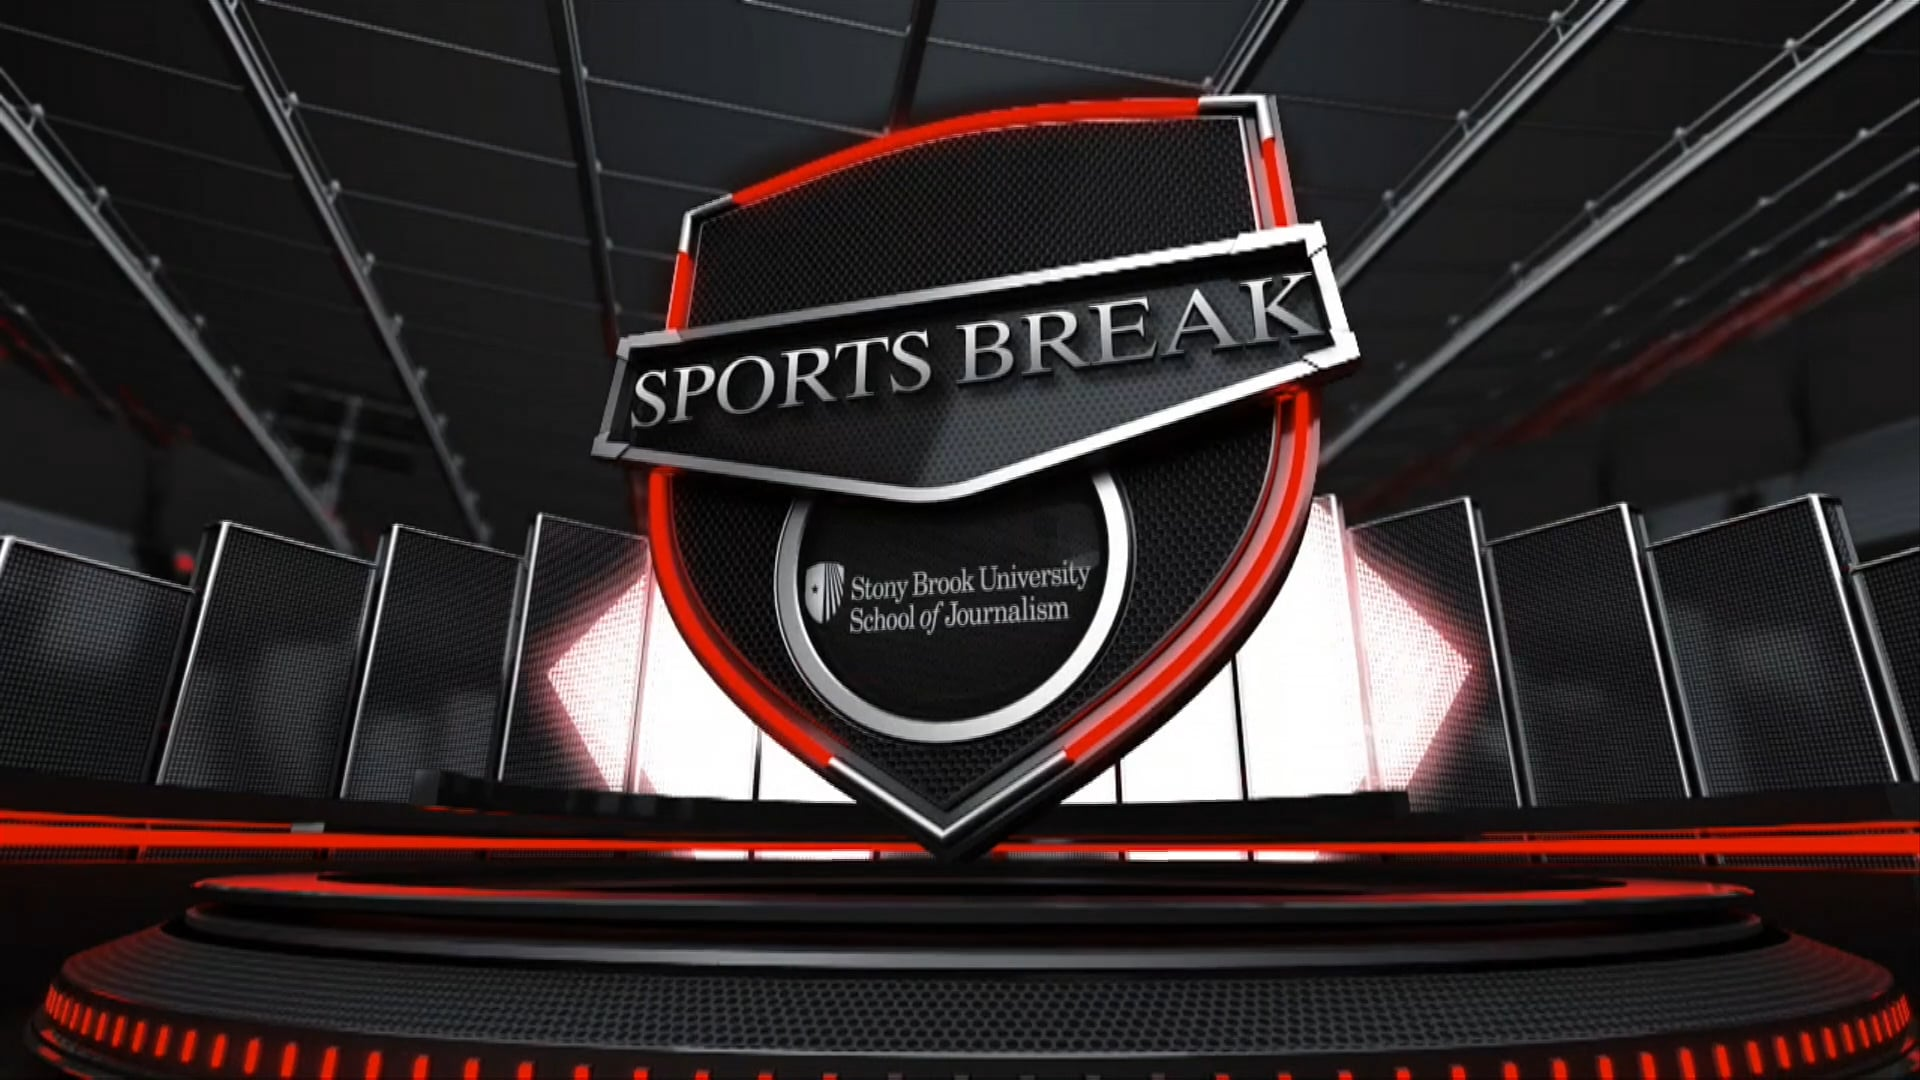 Stony Brook Sportsbreak – September 27, 2017